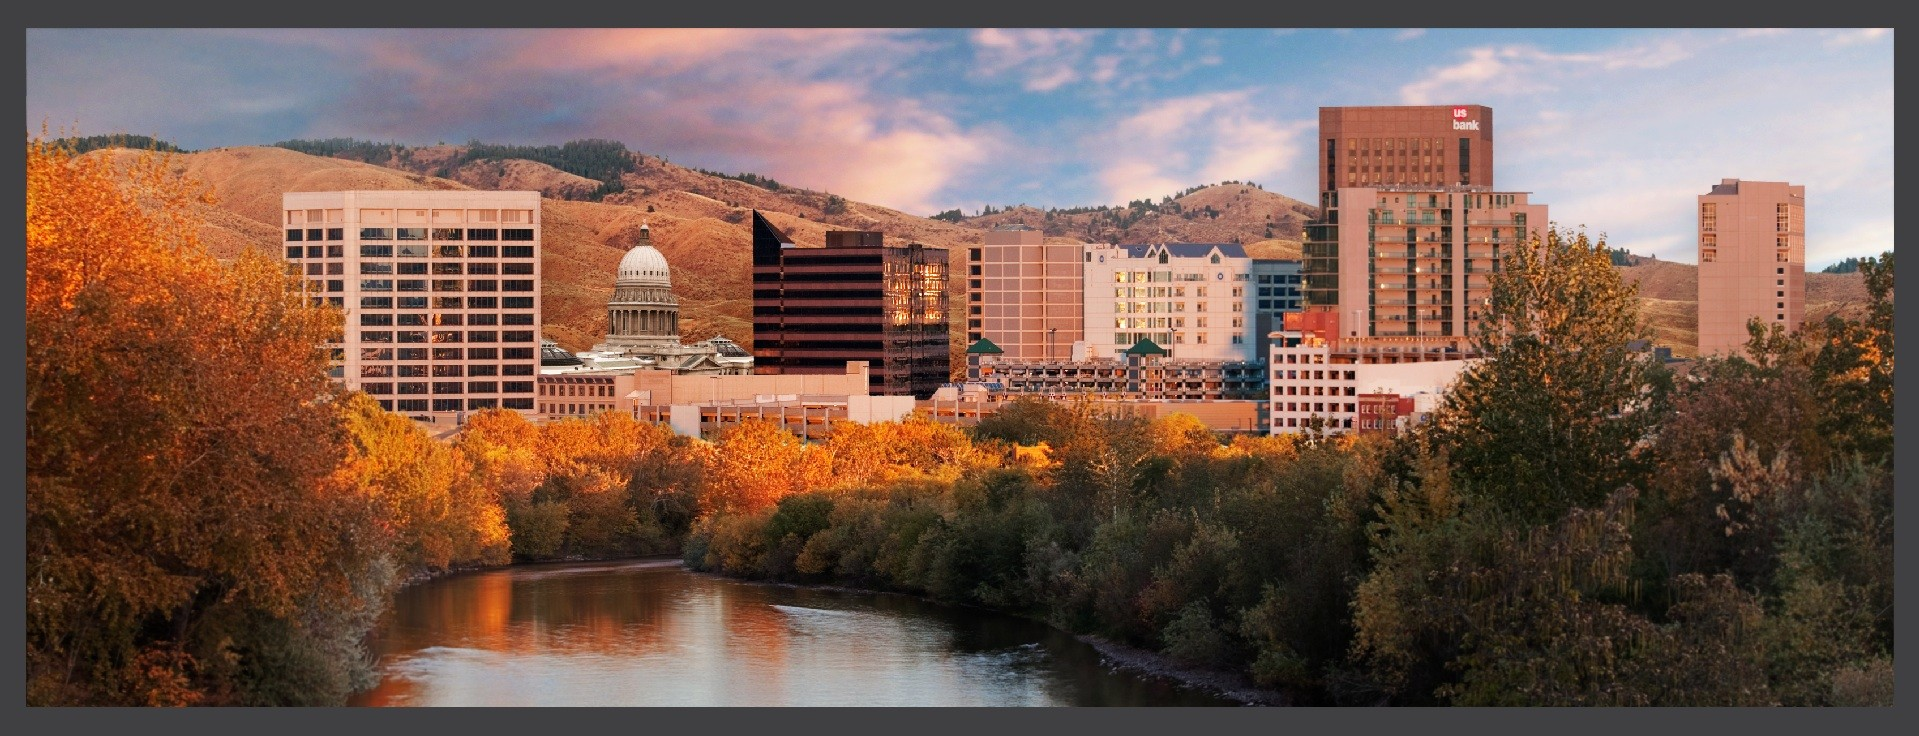 Scenic downtown Boise as seen from the river at sunset.